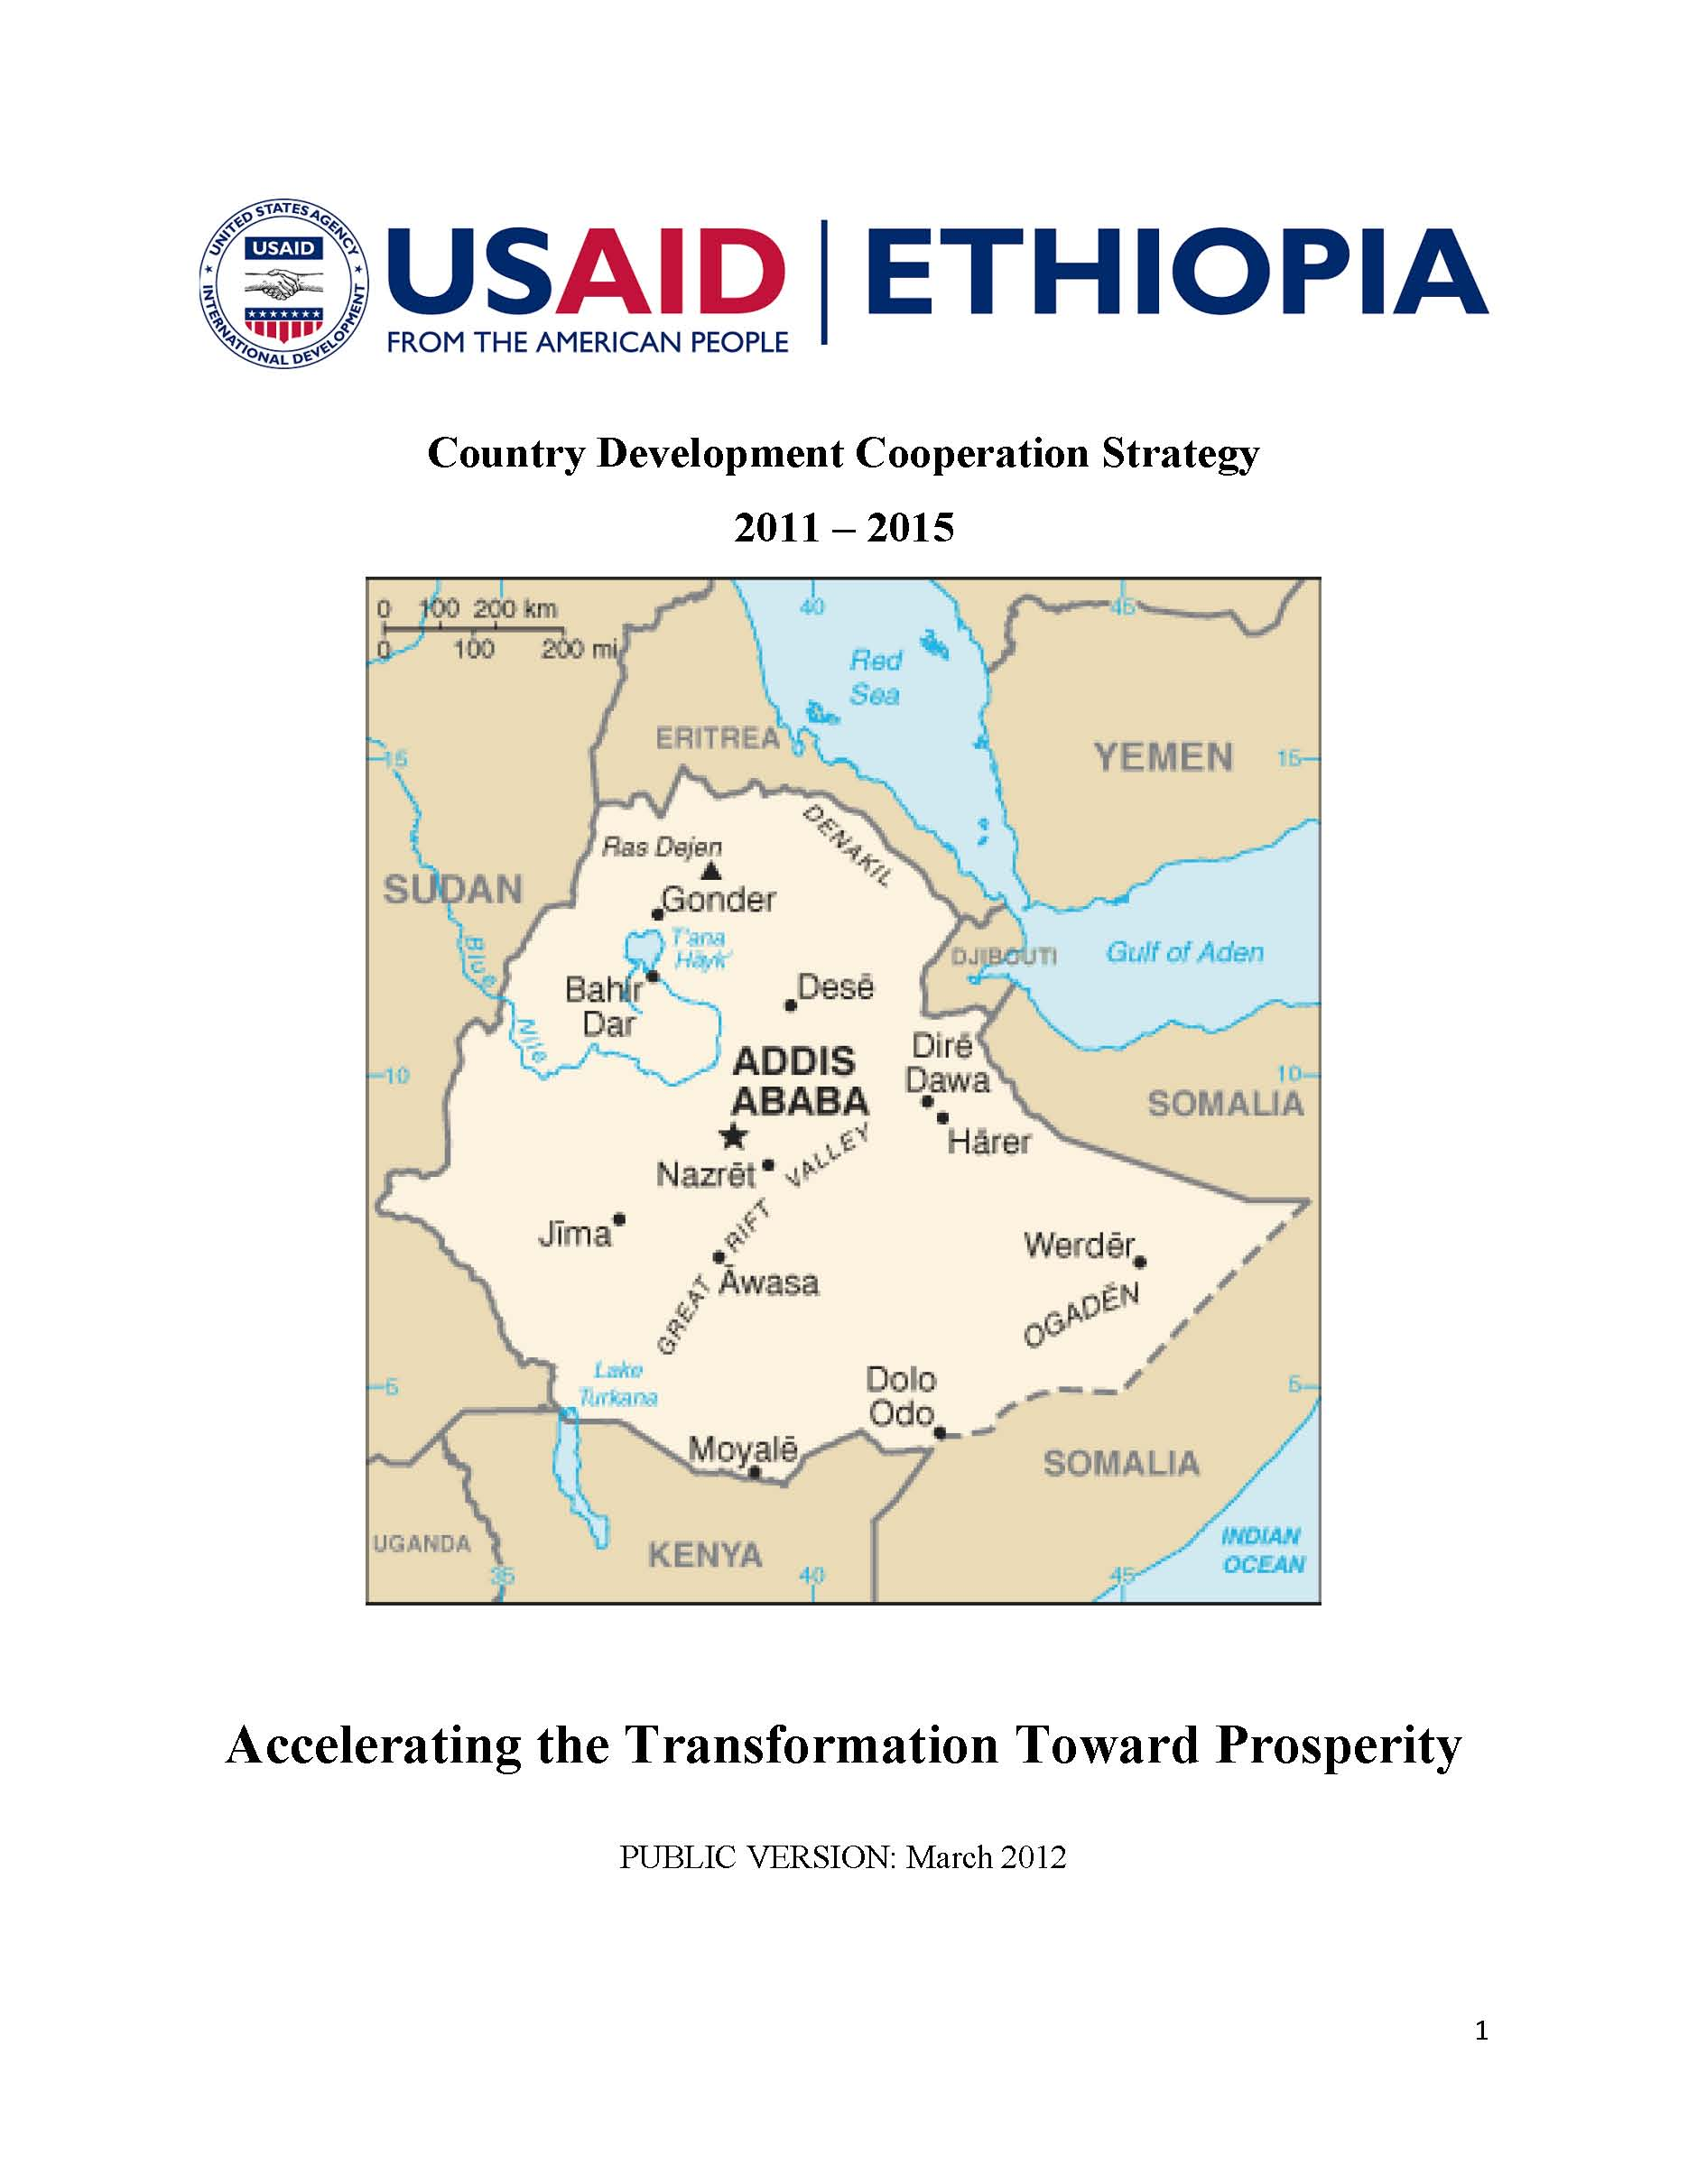 USAID's new five year CDCS builds on the Government of Ethiopia's Growth and Transformation Plan